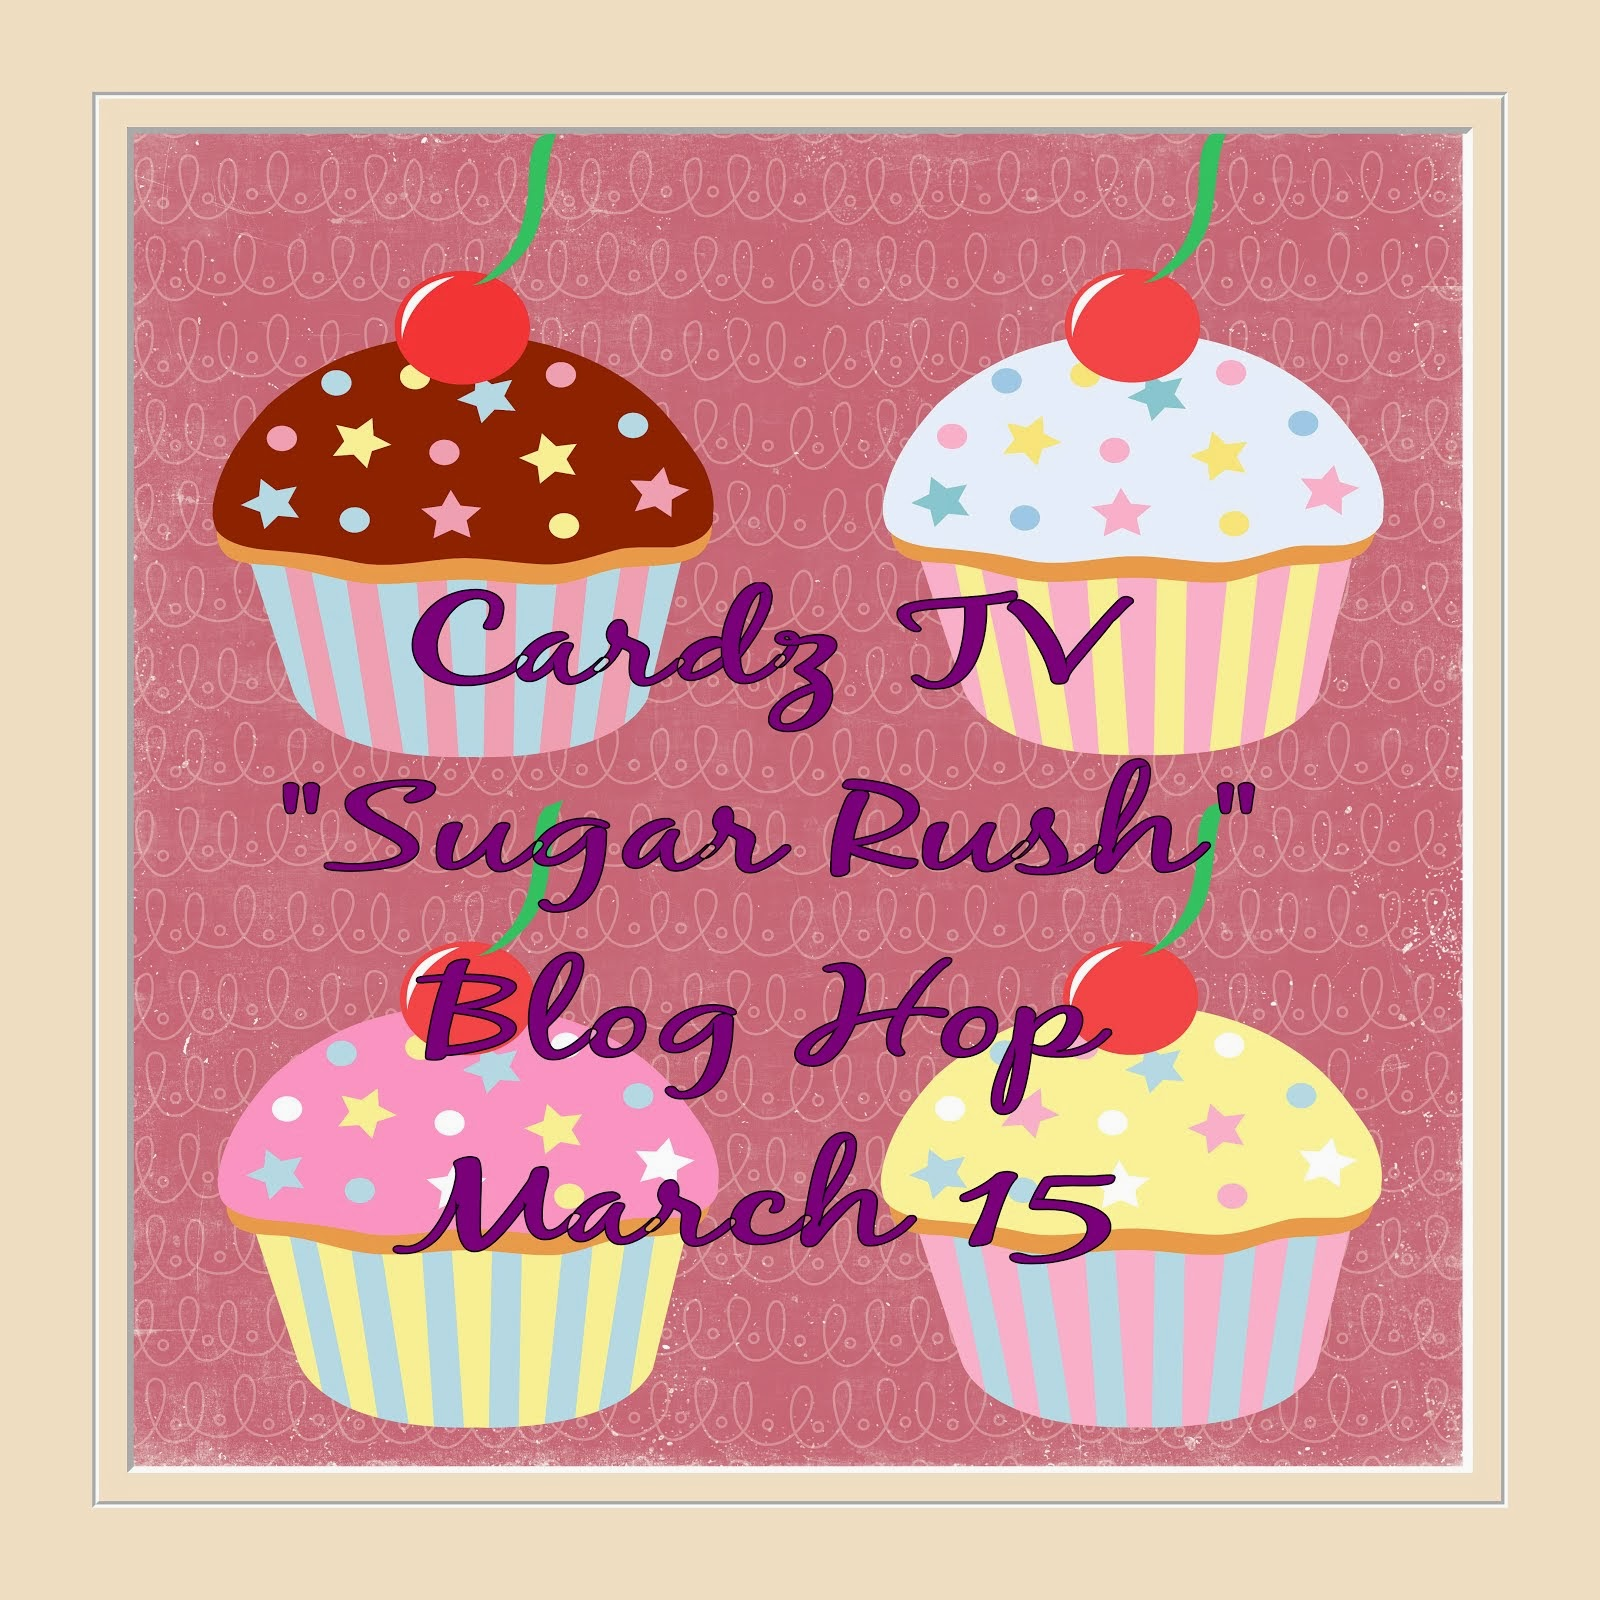 "SAVE THE DATE! CARDZ TV ""SUGAR RUSH"" BLOG HOP MARCH 15, 2014"